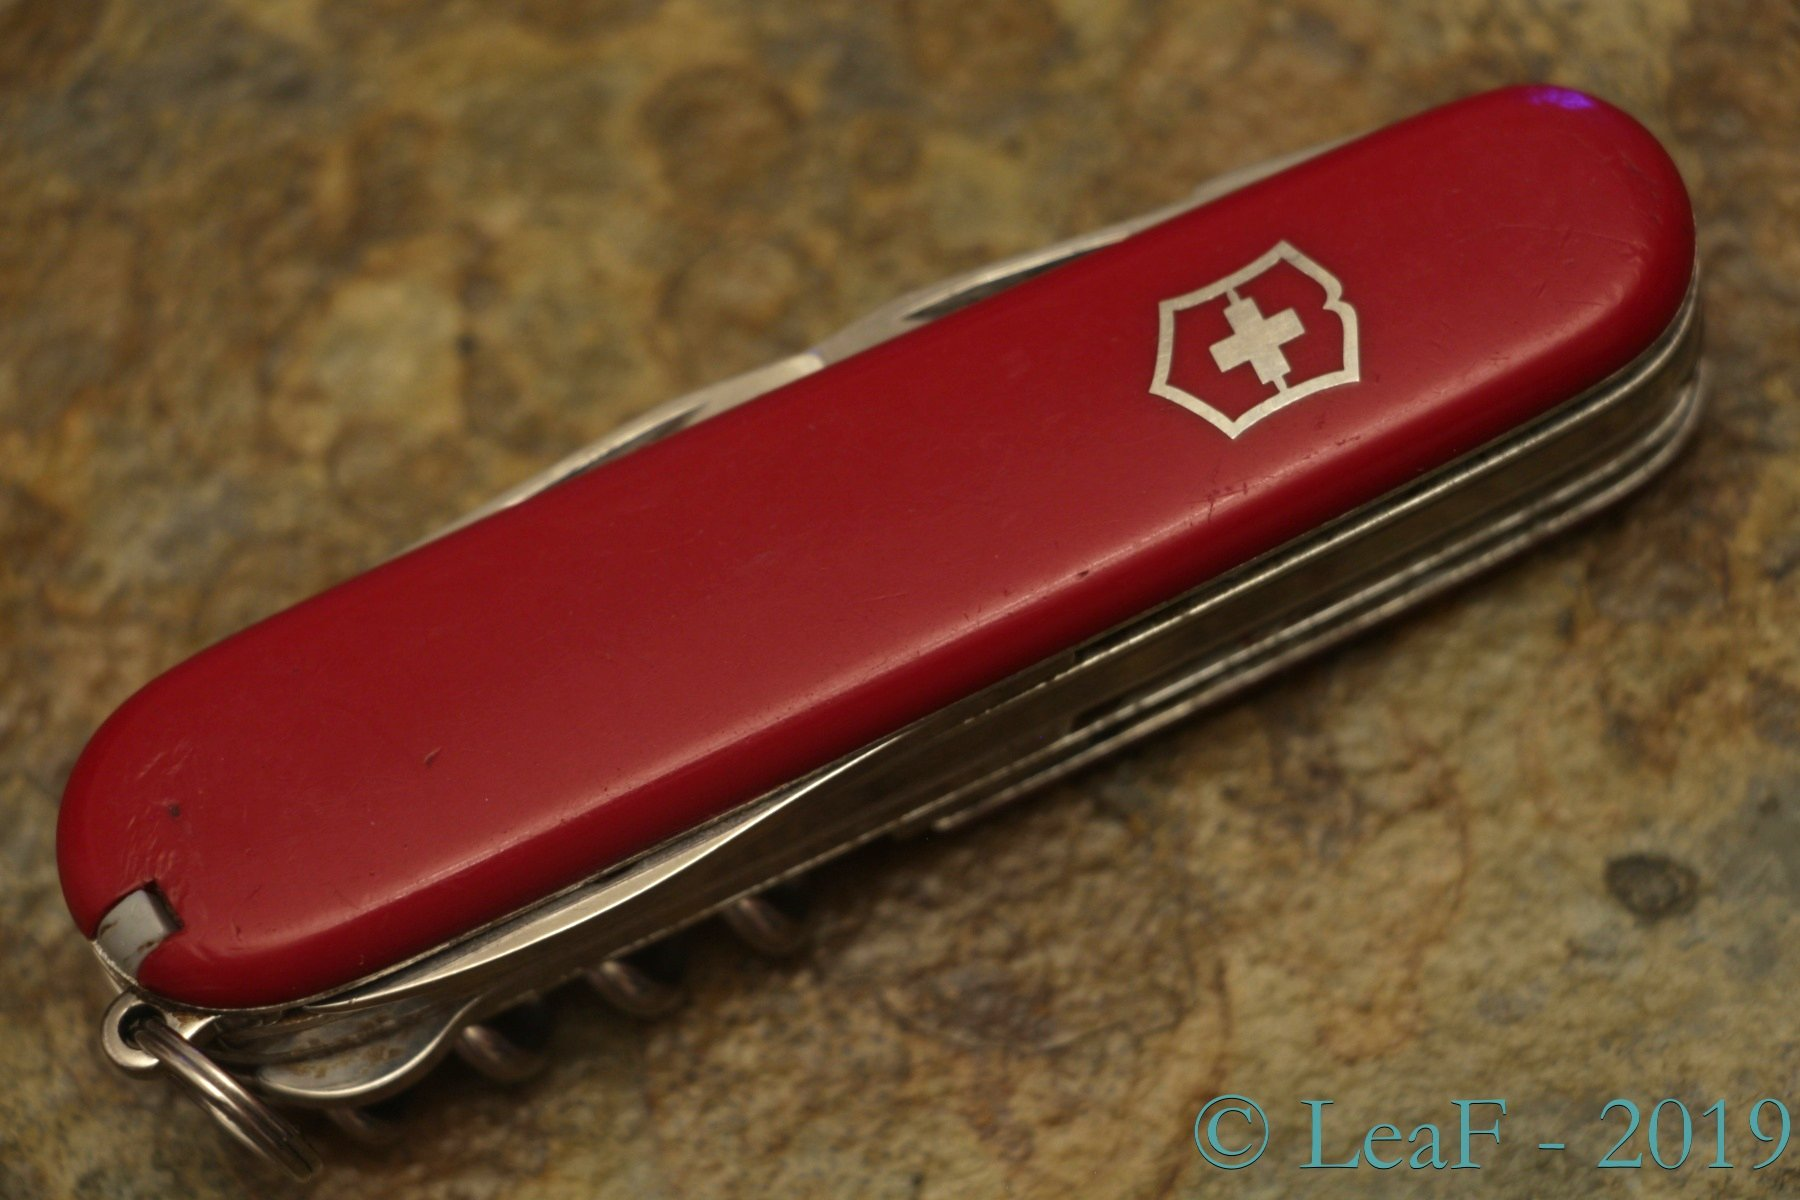 326 Climber Deluxe Leaf S Victorinox Knives Collection